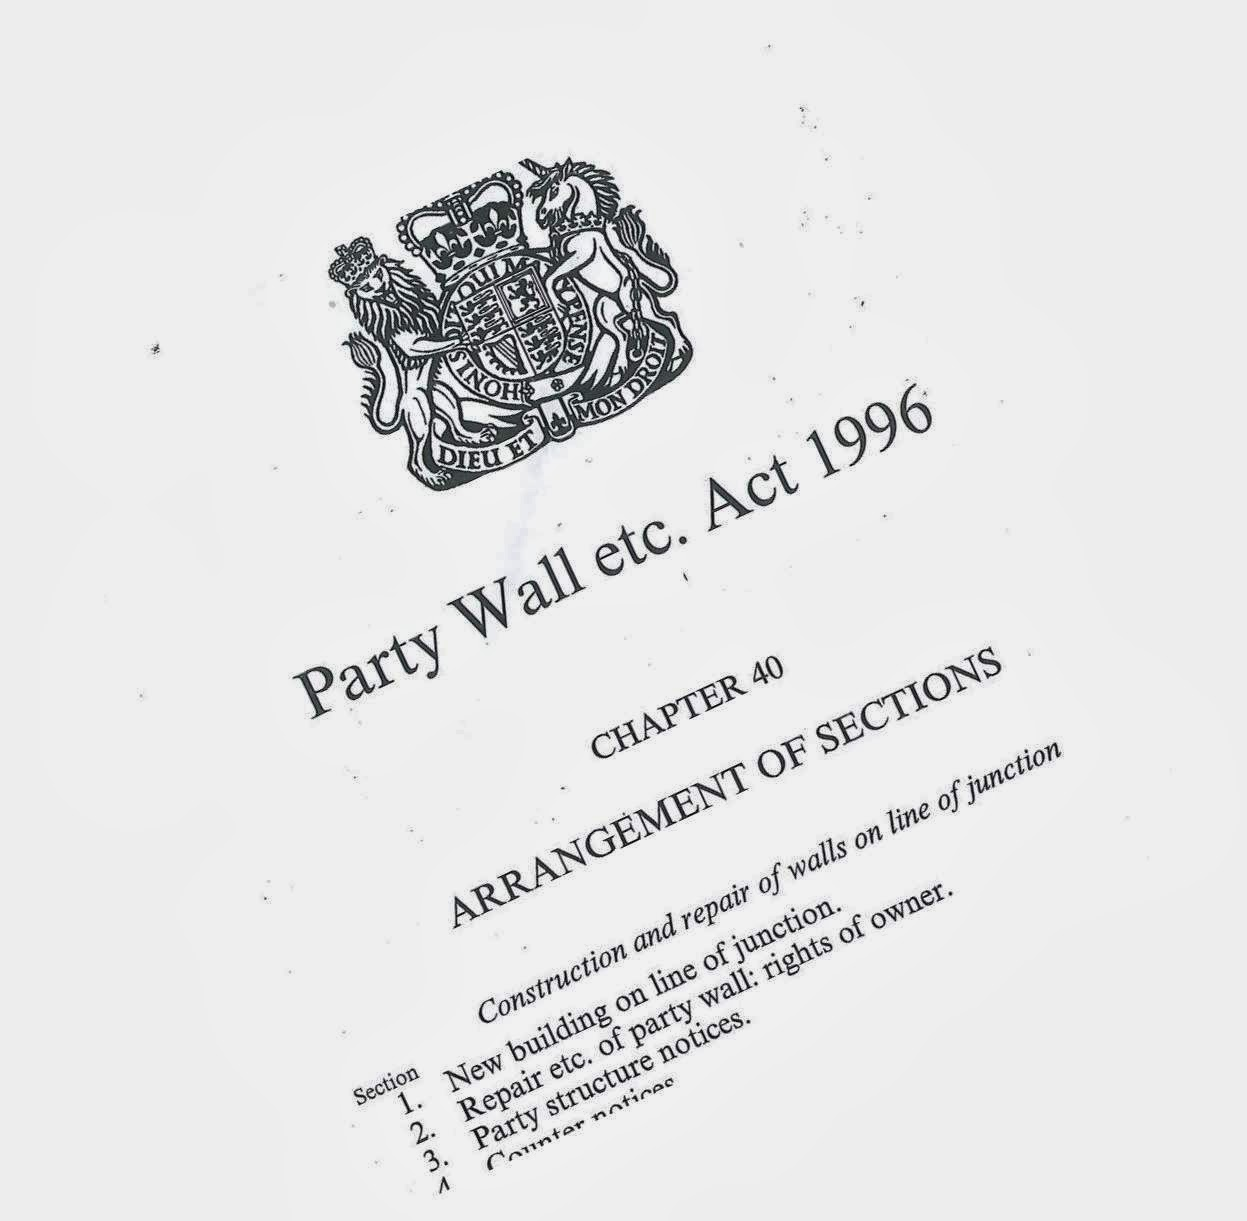 Surveying property party wall etc act 1996 much more for Party wall agreed surveyor